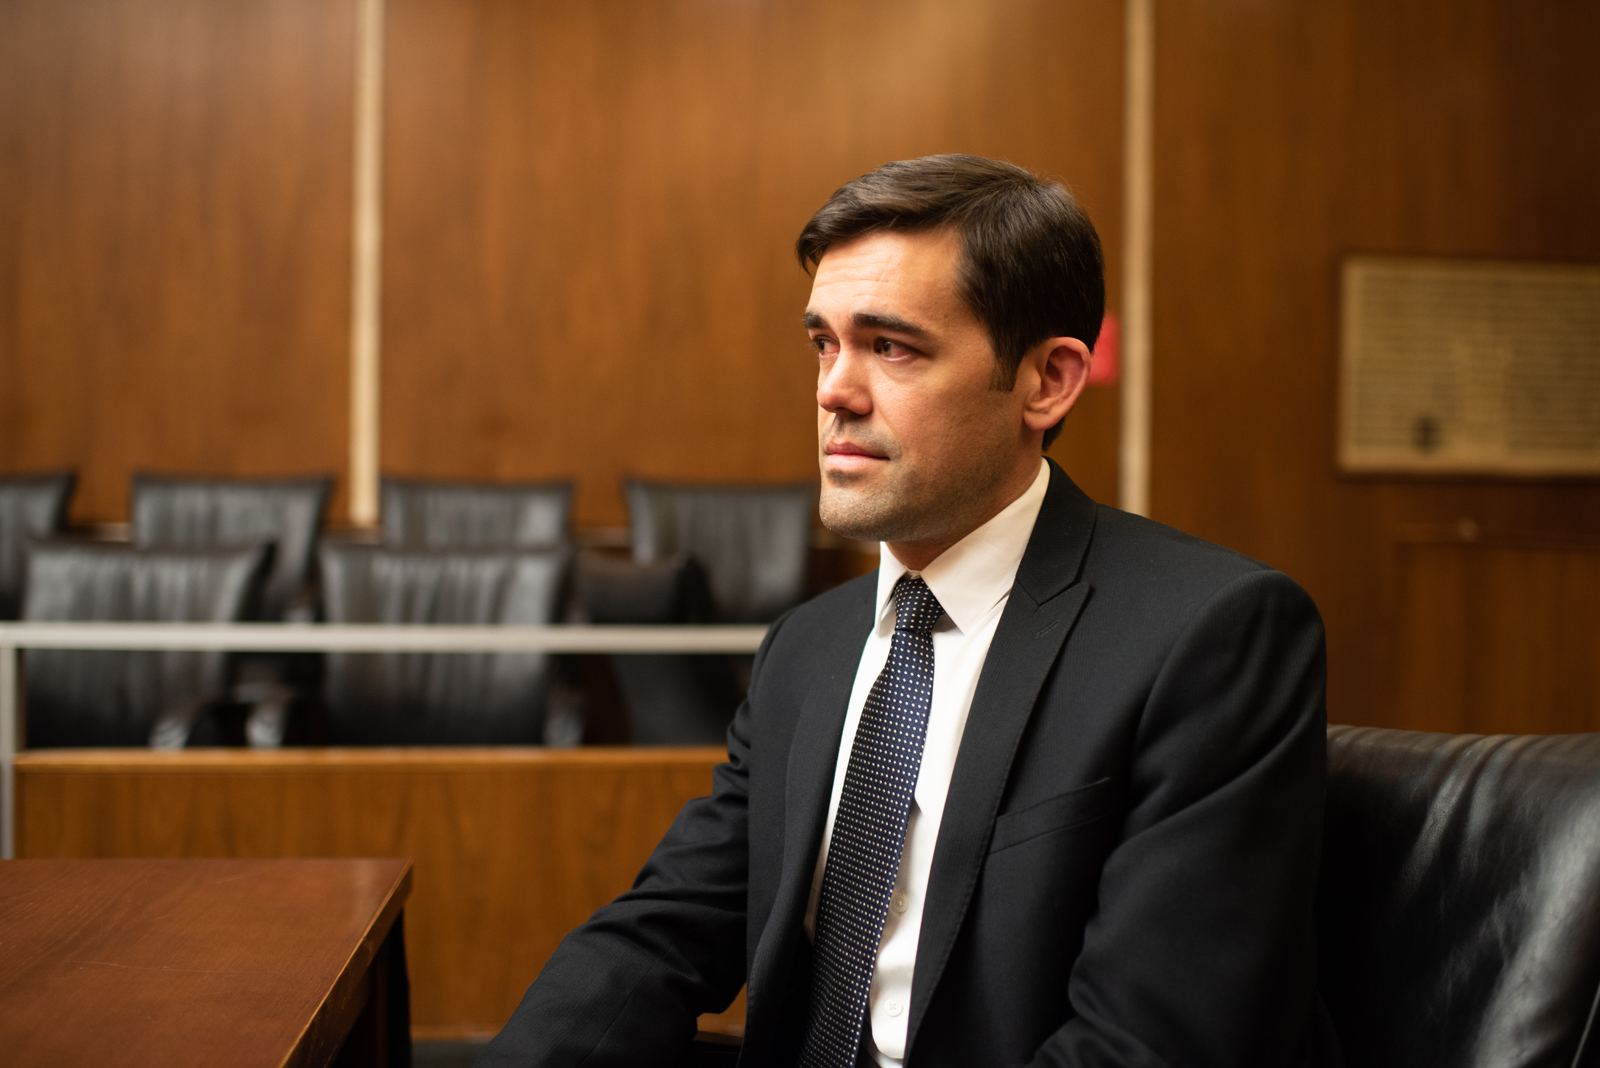 """Ross  As a prosecutor, Ross feels that the """"weight of human misery"""" he witnesses day in and day out is often too much to bear."""